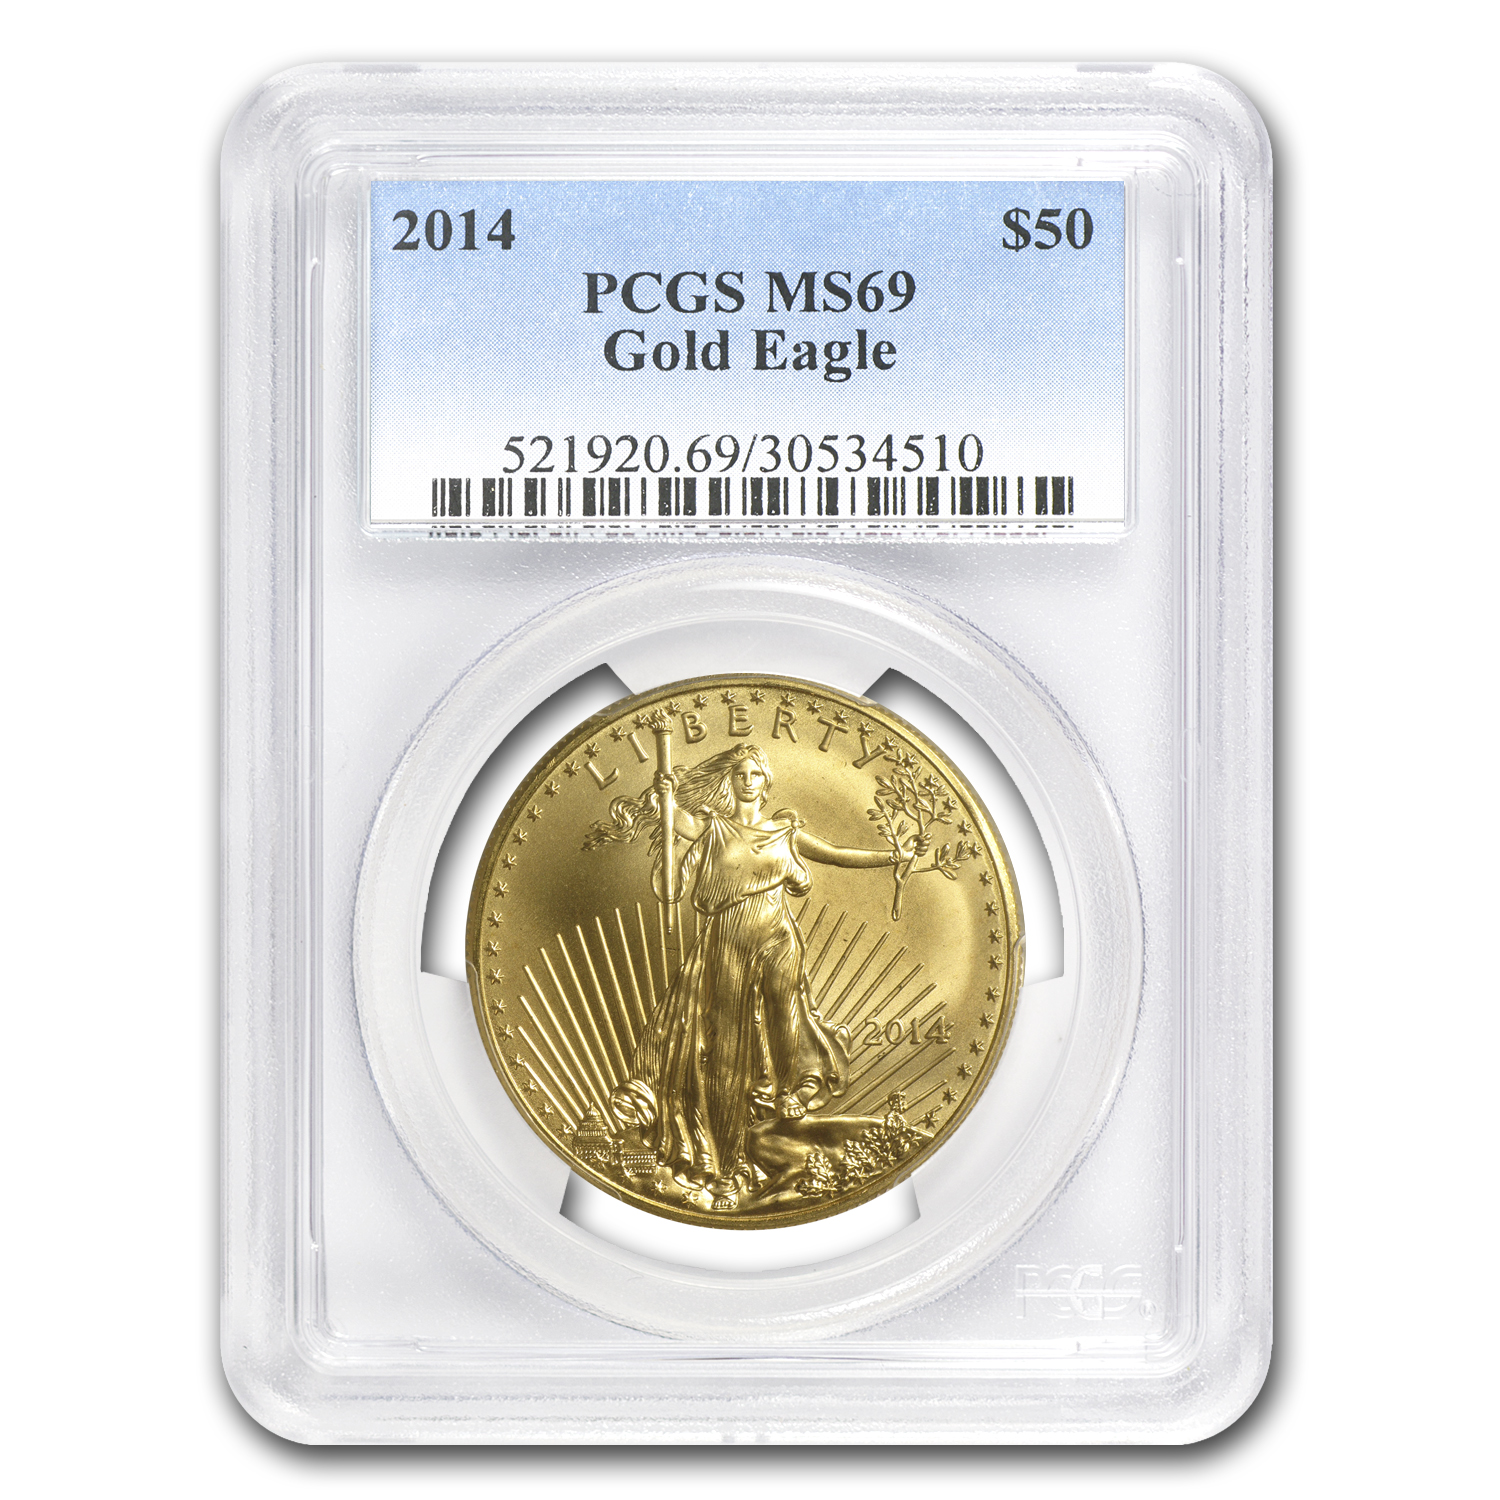 2014 1 oz Gold American Eagle MS-69 PCGS